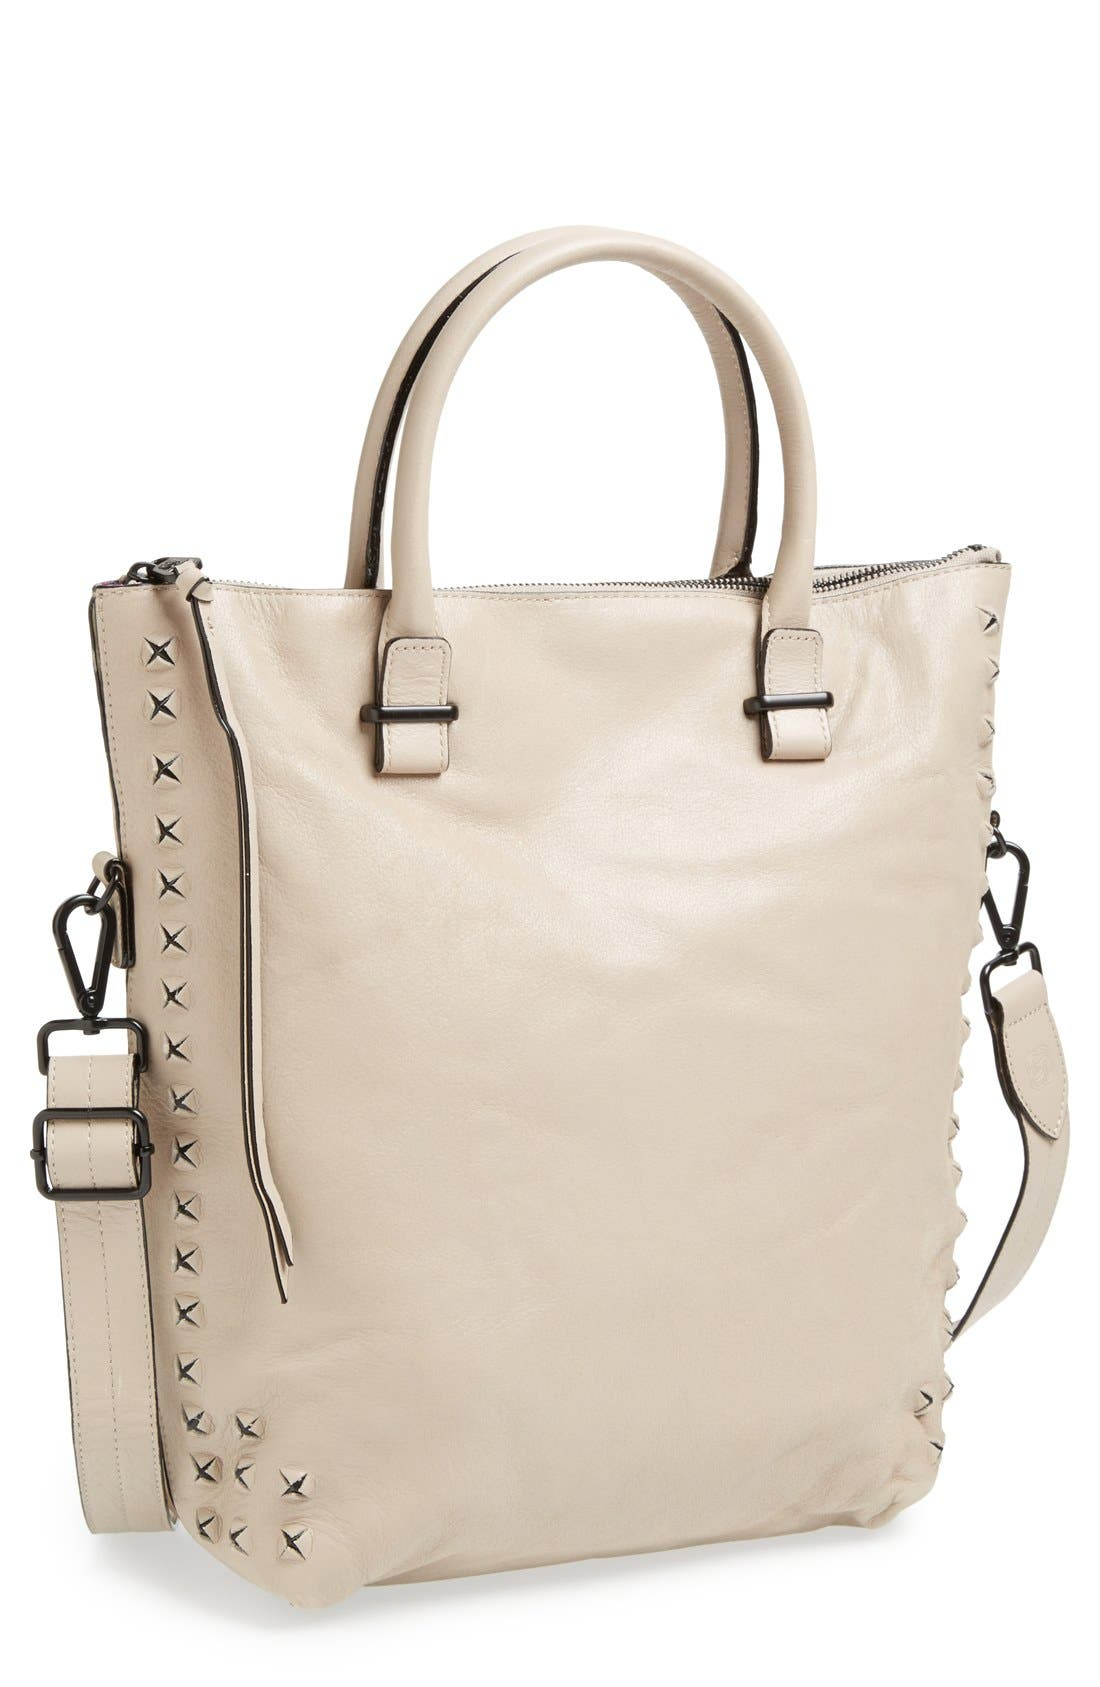 Main Image - Elliott Lucca 'Medium Maia' Leather Foldover Tote